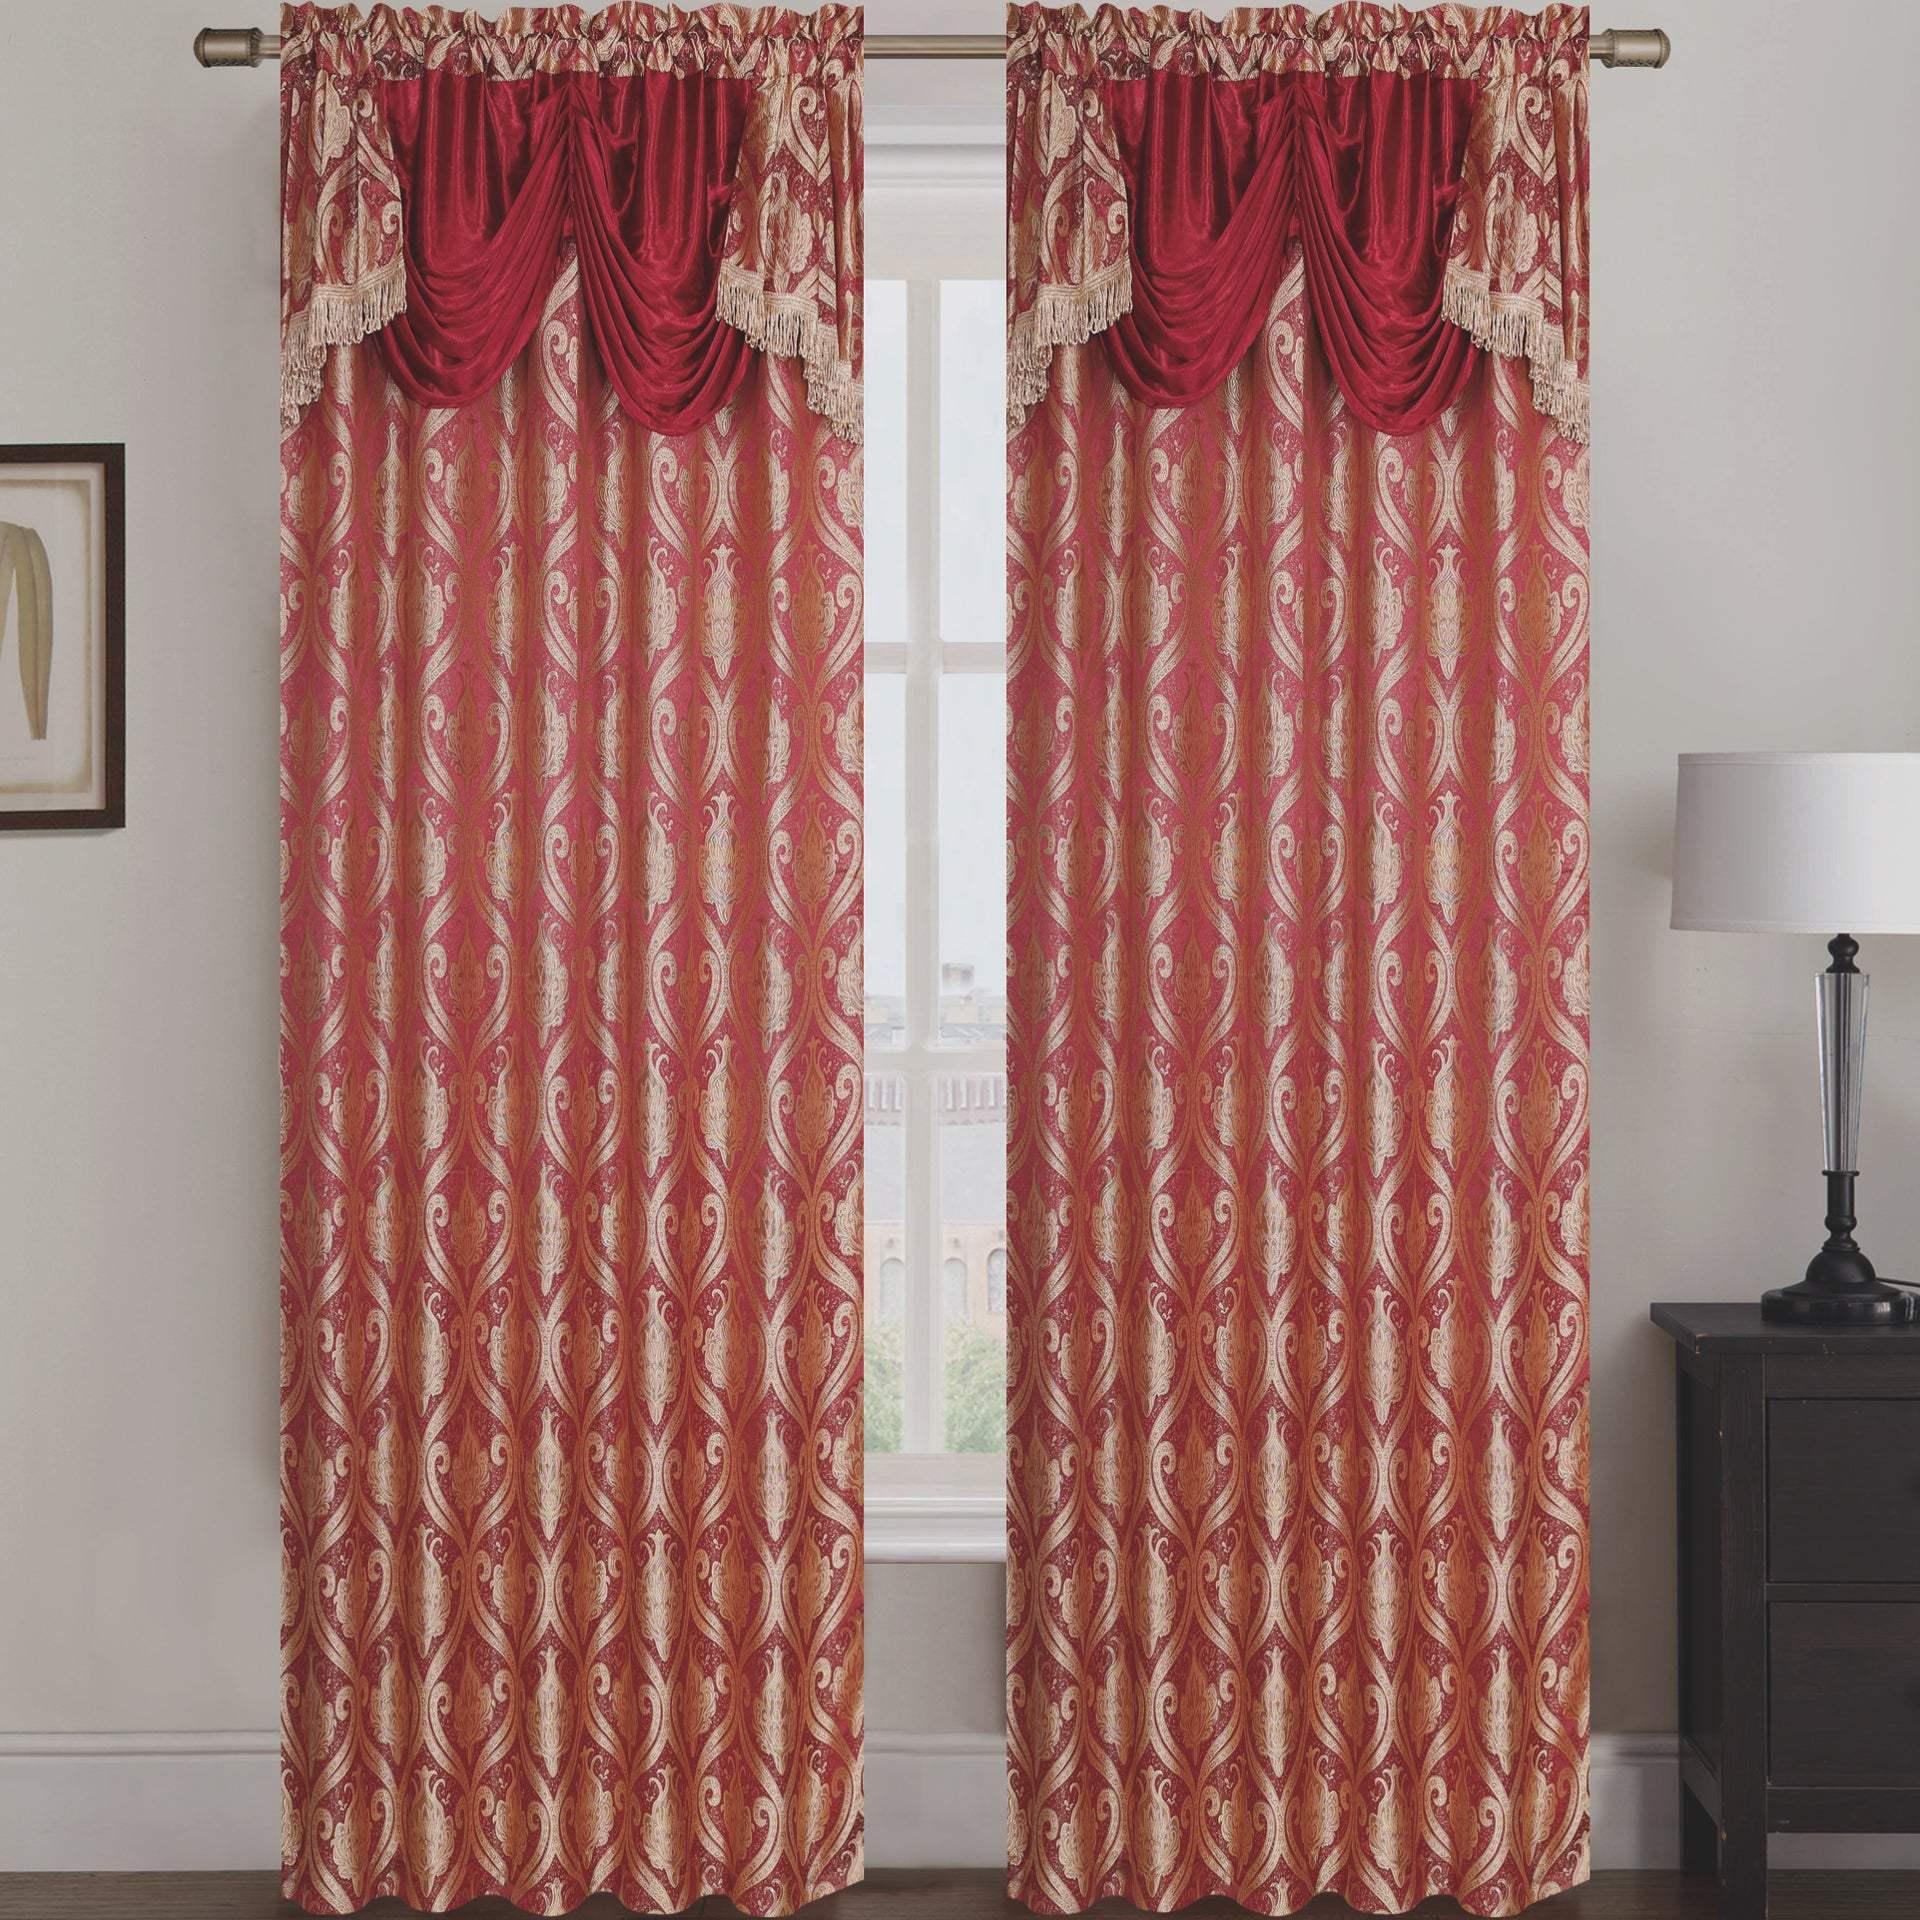 Rebecca Jacquard Rod Pocket Panel with Attached Valance Set of Two - Assorted Colors - Glory Home Design